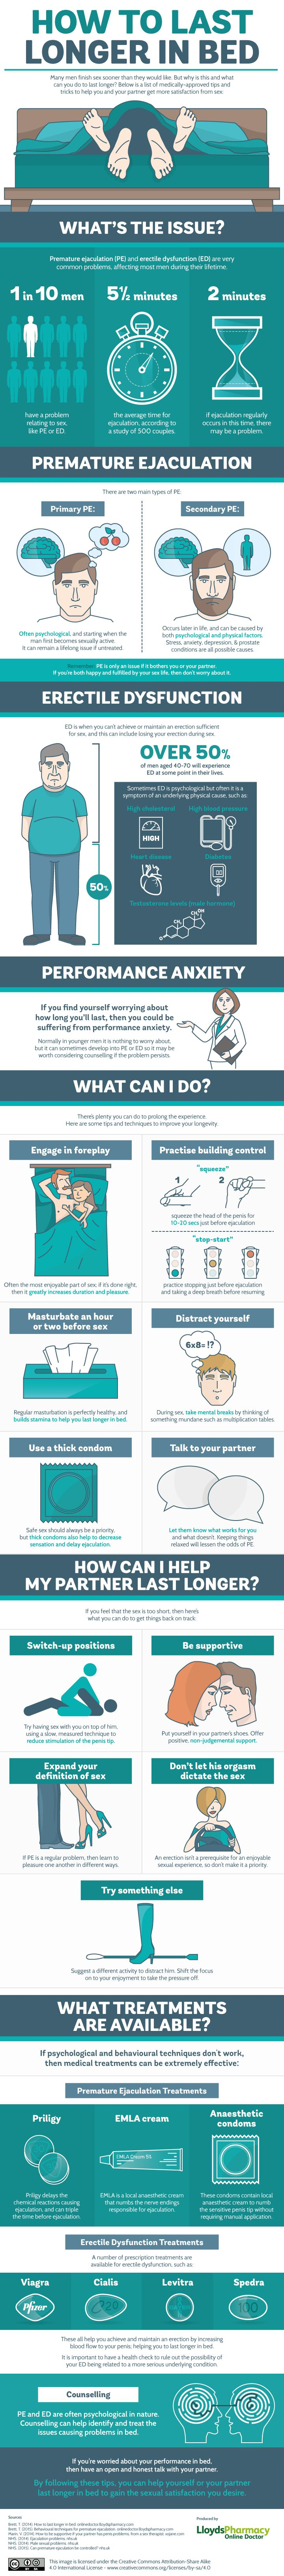 How to Last Longer in Bed #infographic #Health #HowTo #MensHealth #Sex